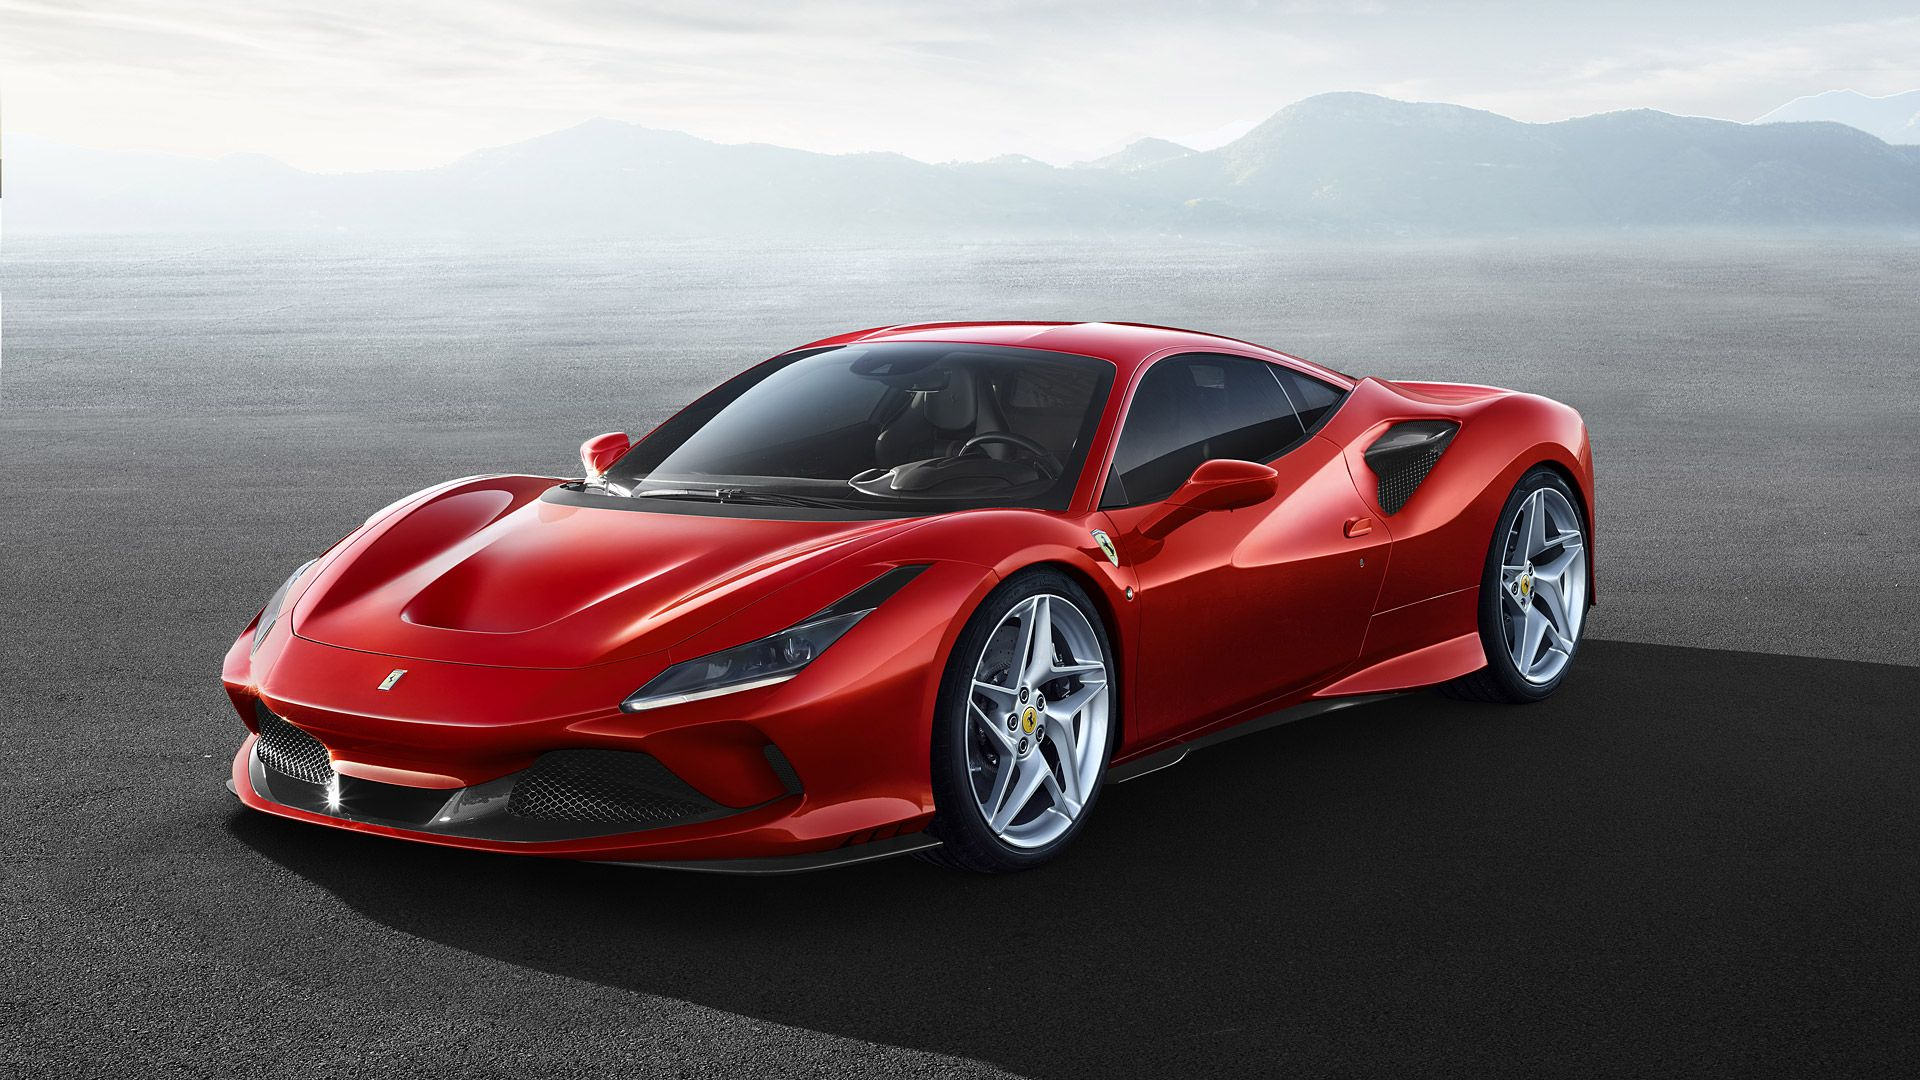 2020 Ferrari F8 Tributo Ferrari Car New Ferrari Super Cars